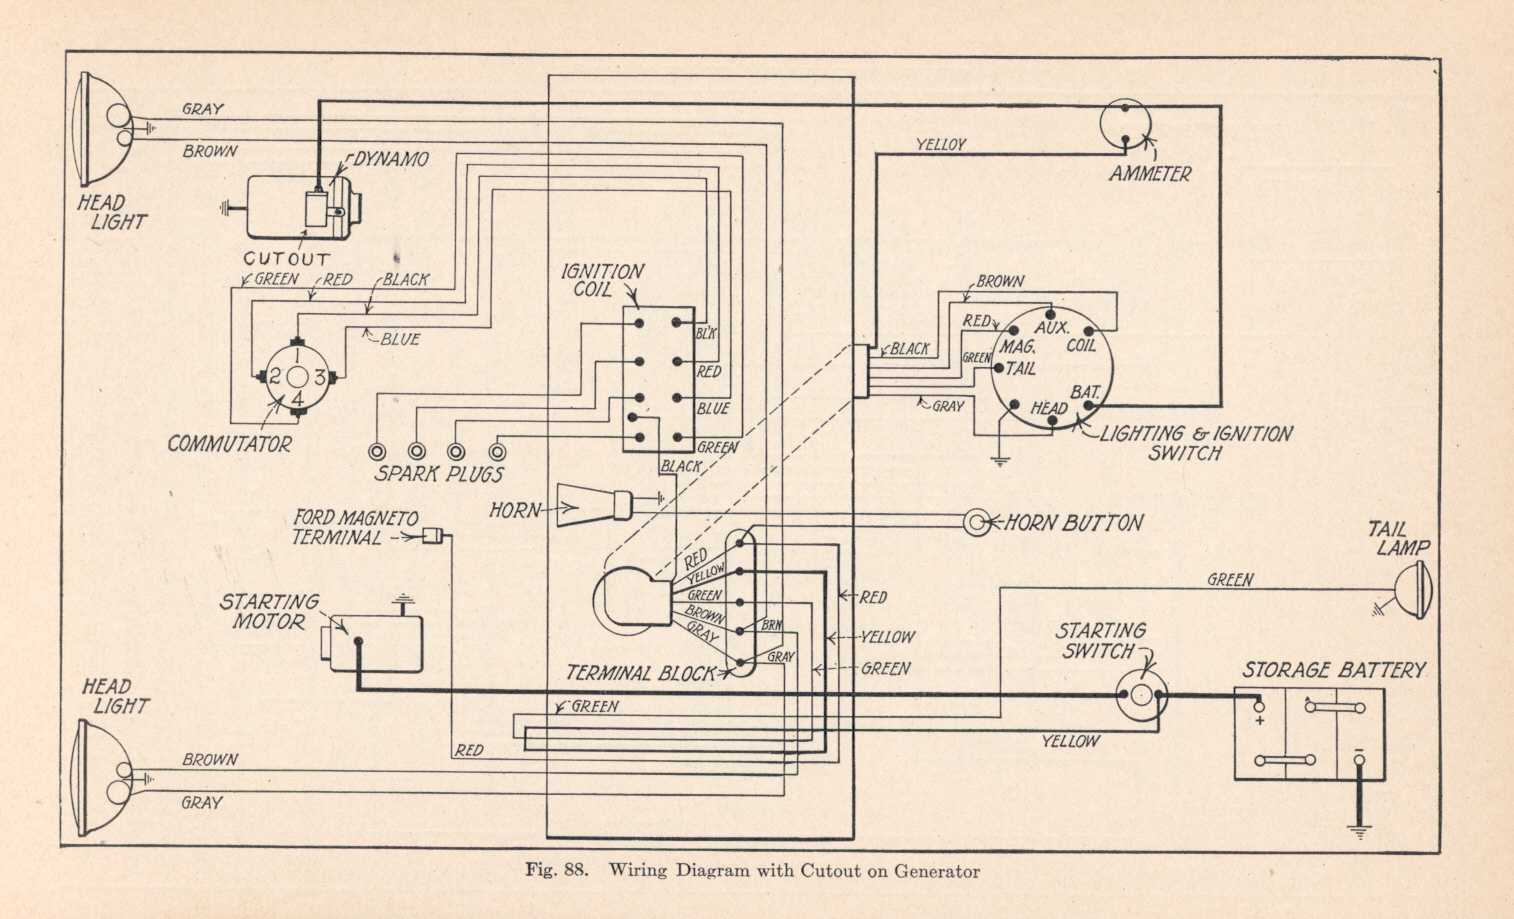 80032 model t ford forum amp meter wiring help needed Single Phase Compressor Wiring Diagram at honlapkeszites.co